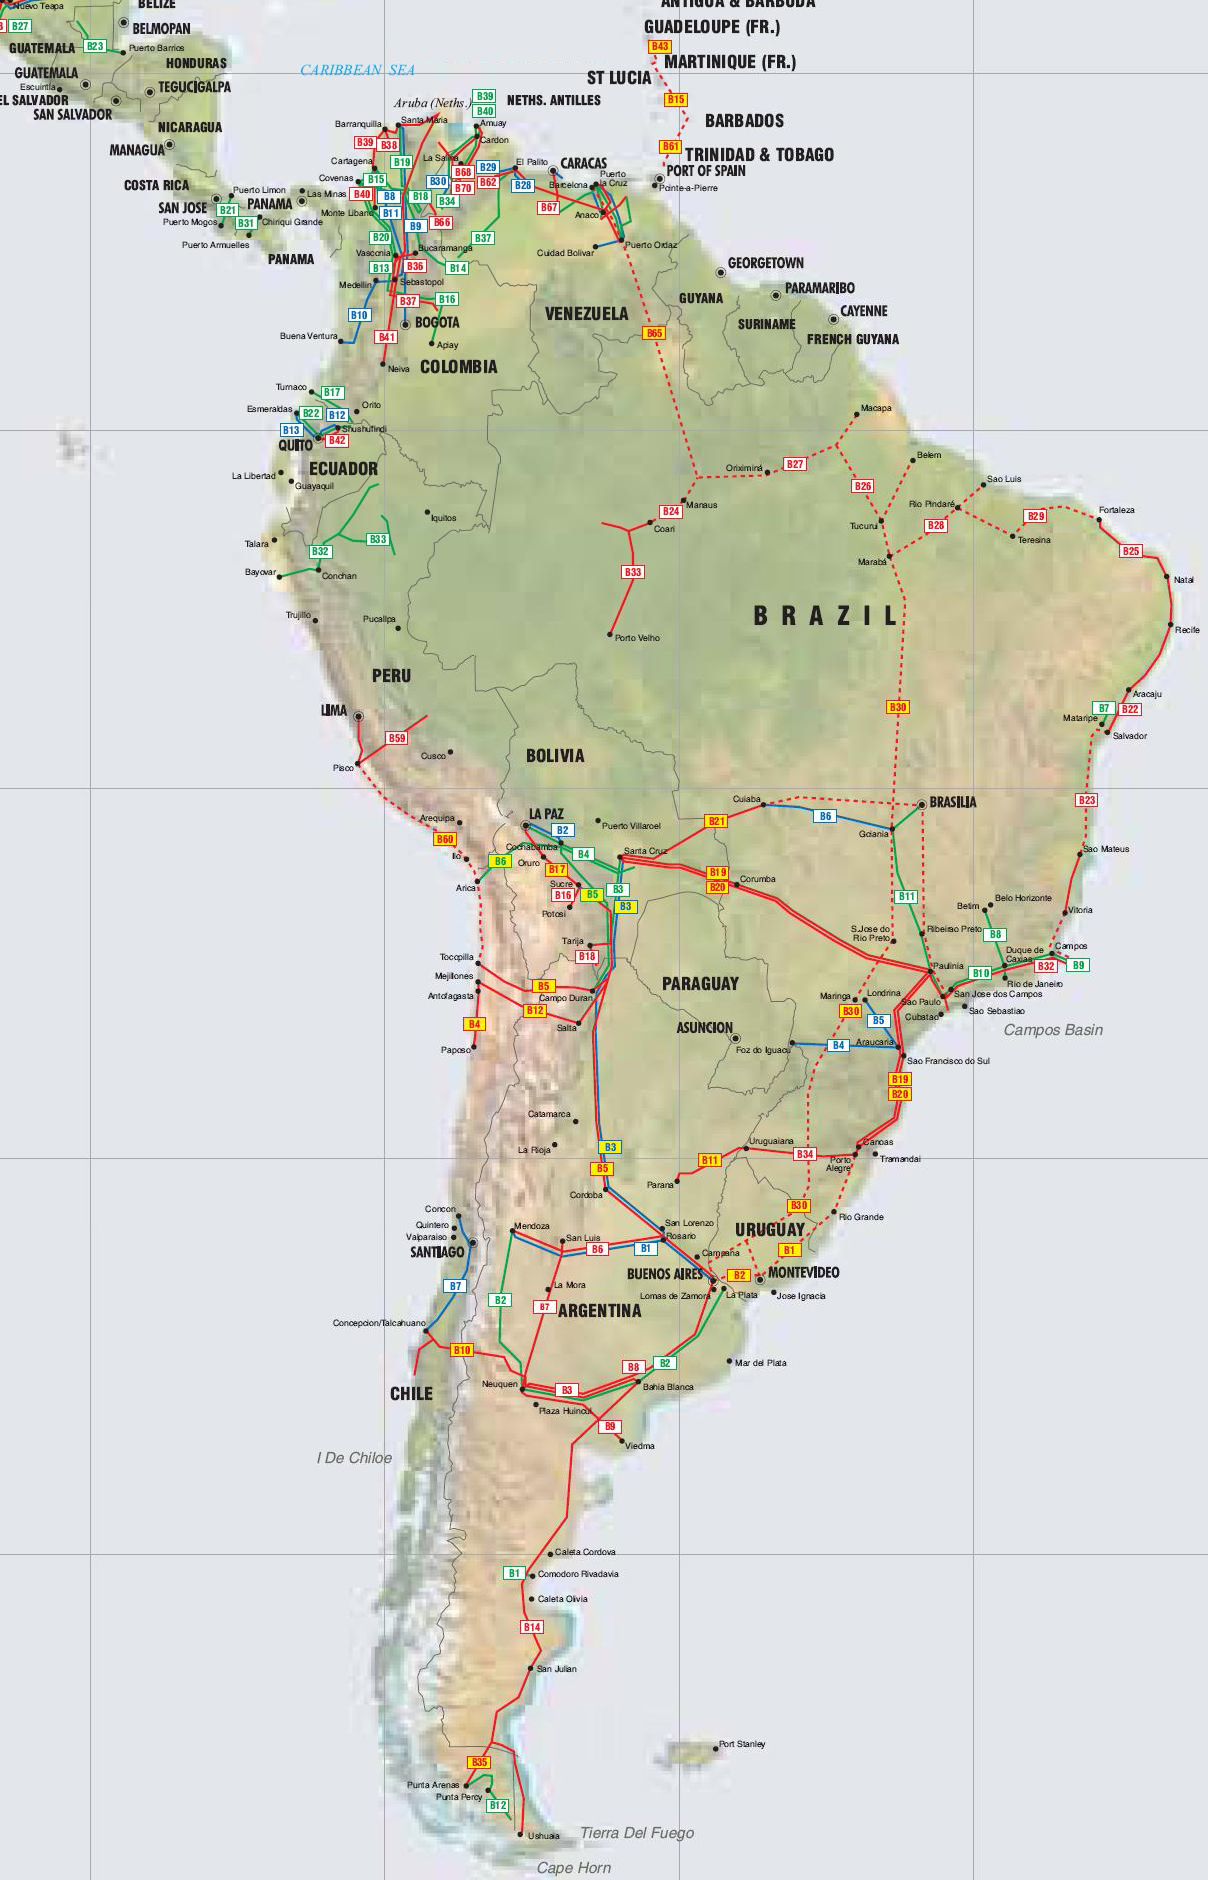 Central America Caribbean And South America Pipelines Map Crude - S america map